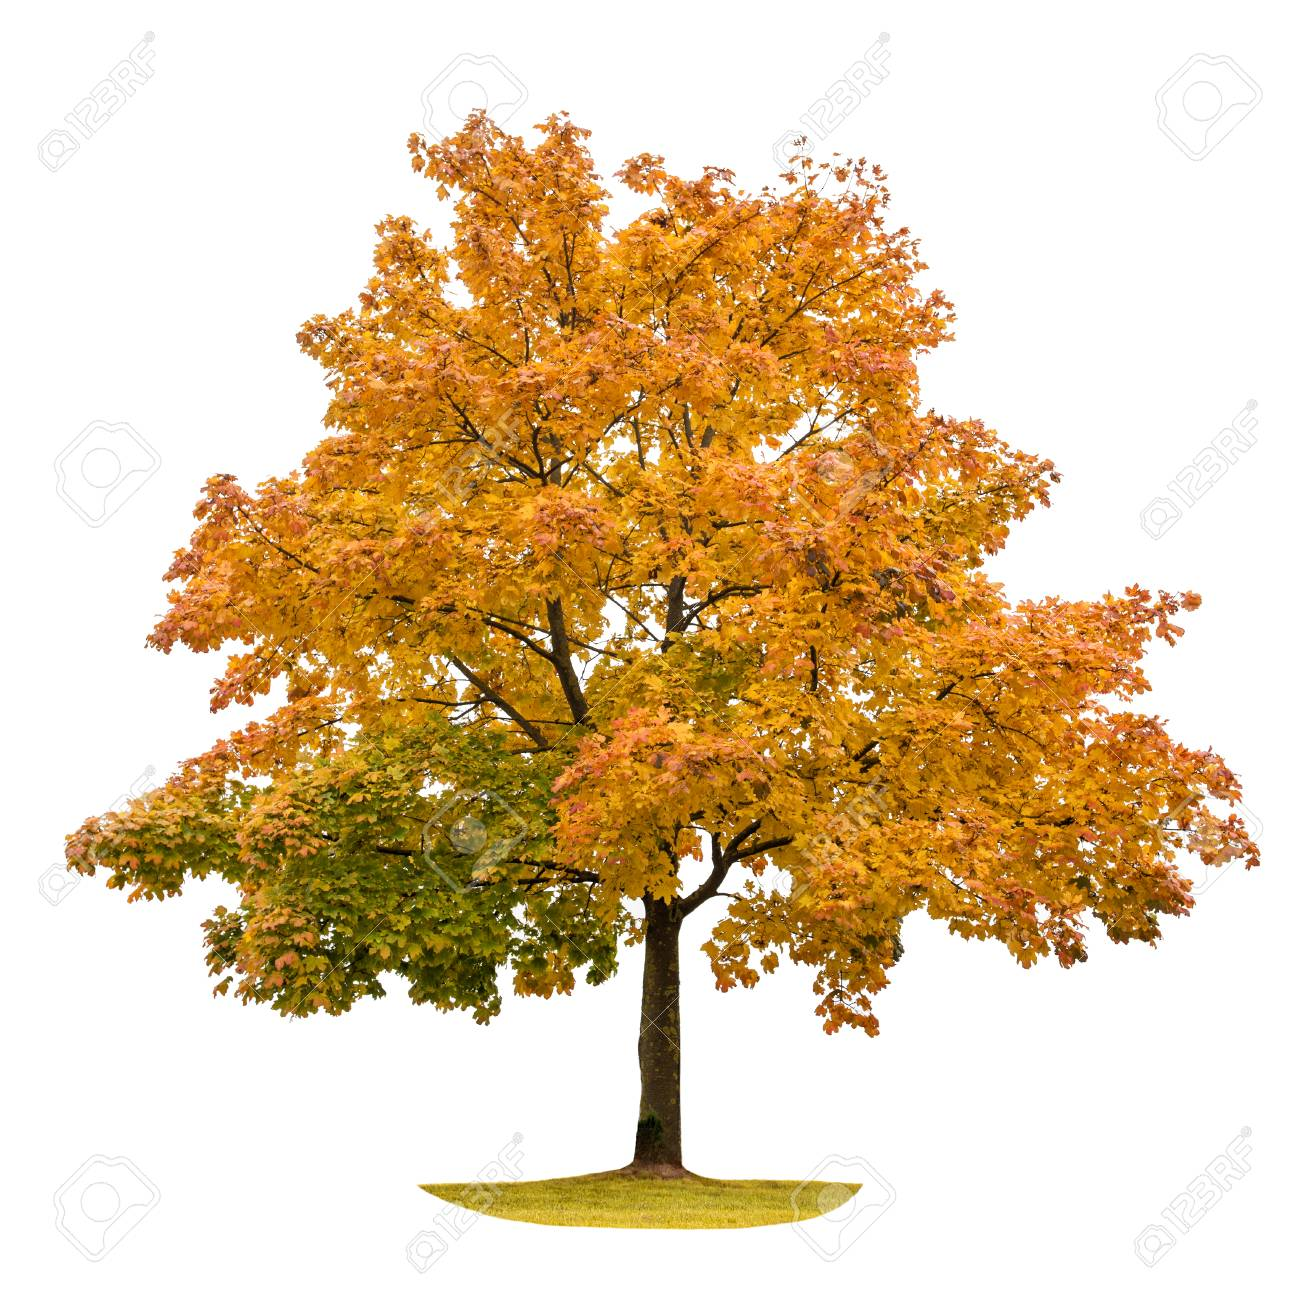 Image result for maple tree white background